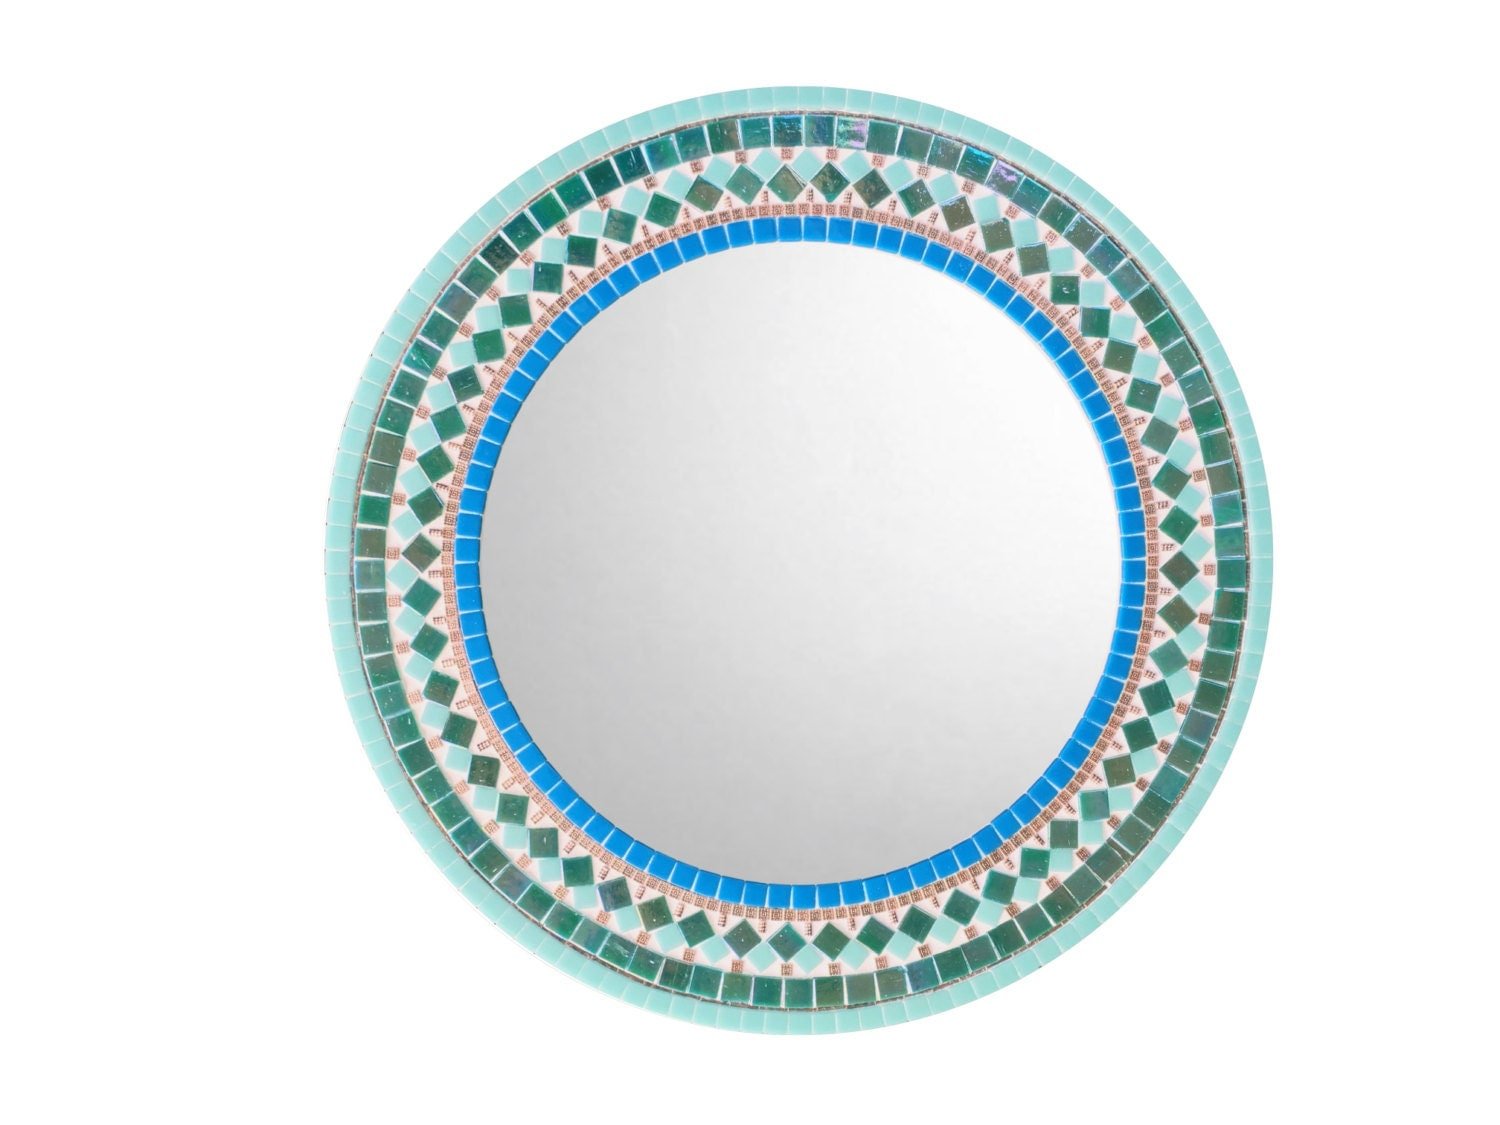 Round wall mirror for bathroom mosaic mirror teal aqua for Aqua mosaic bathroom accessories